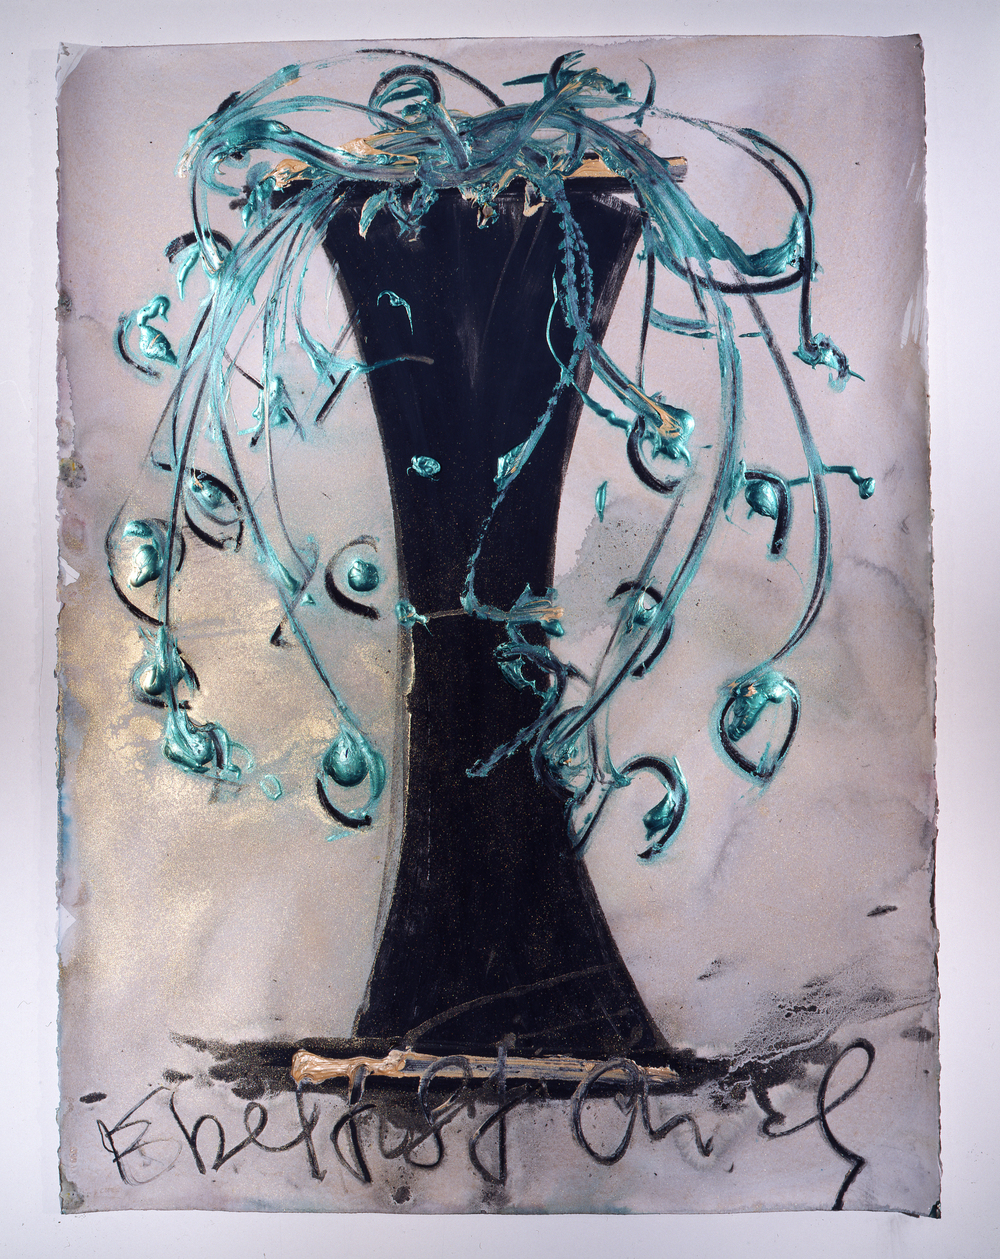 Dale Chihuly,  Ebeltoft Drawing,  (1991, mixed media on paper, 30 x 22 inches), DC.357